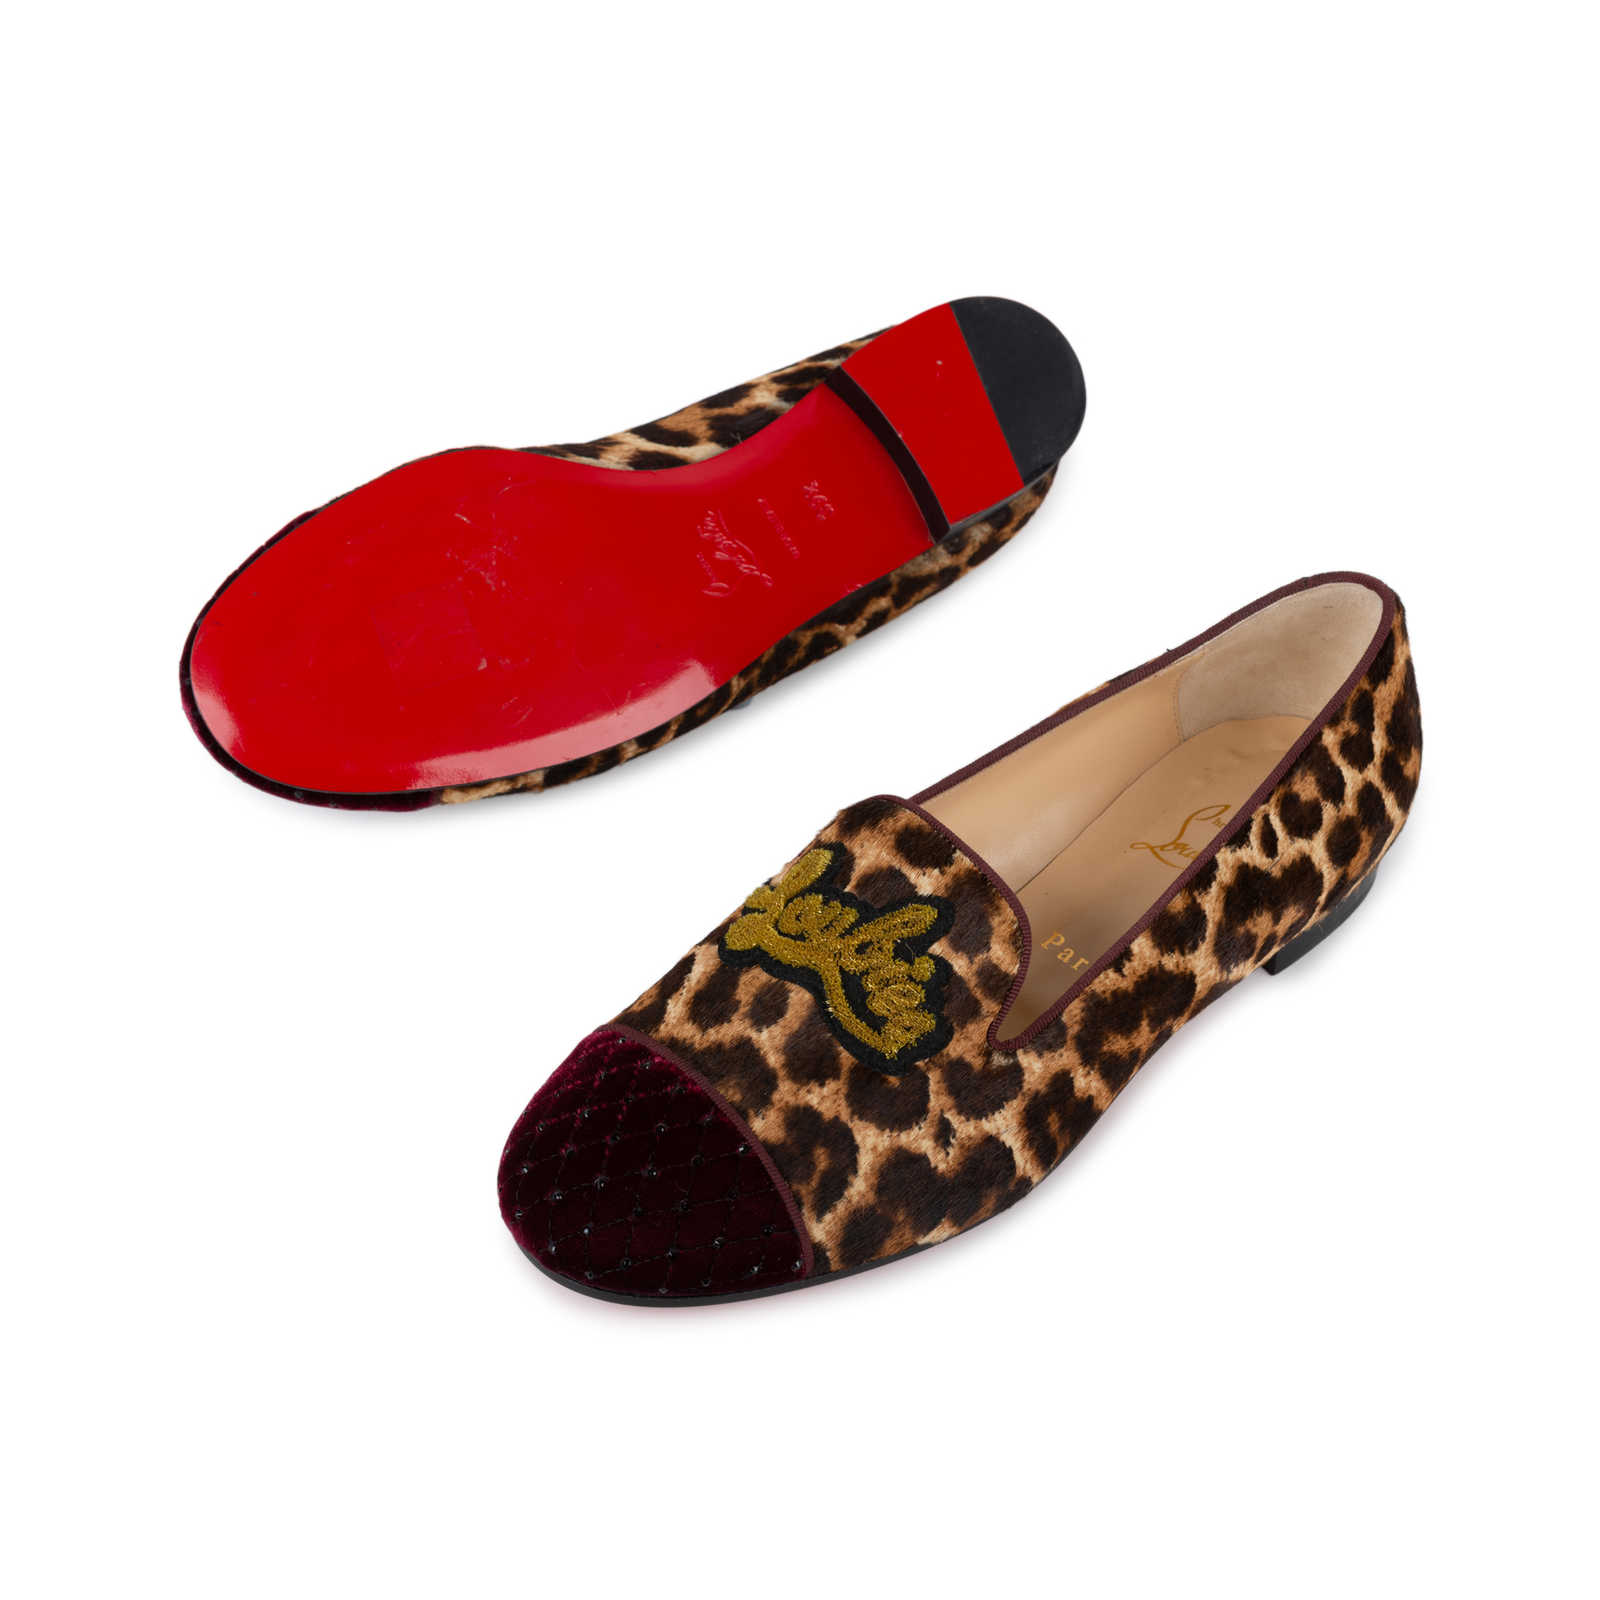 9a2fa411abfb ... Authentic Second Hand Christian Louboutin My Love Loafers  (PSS-569-00013) ...